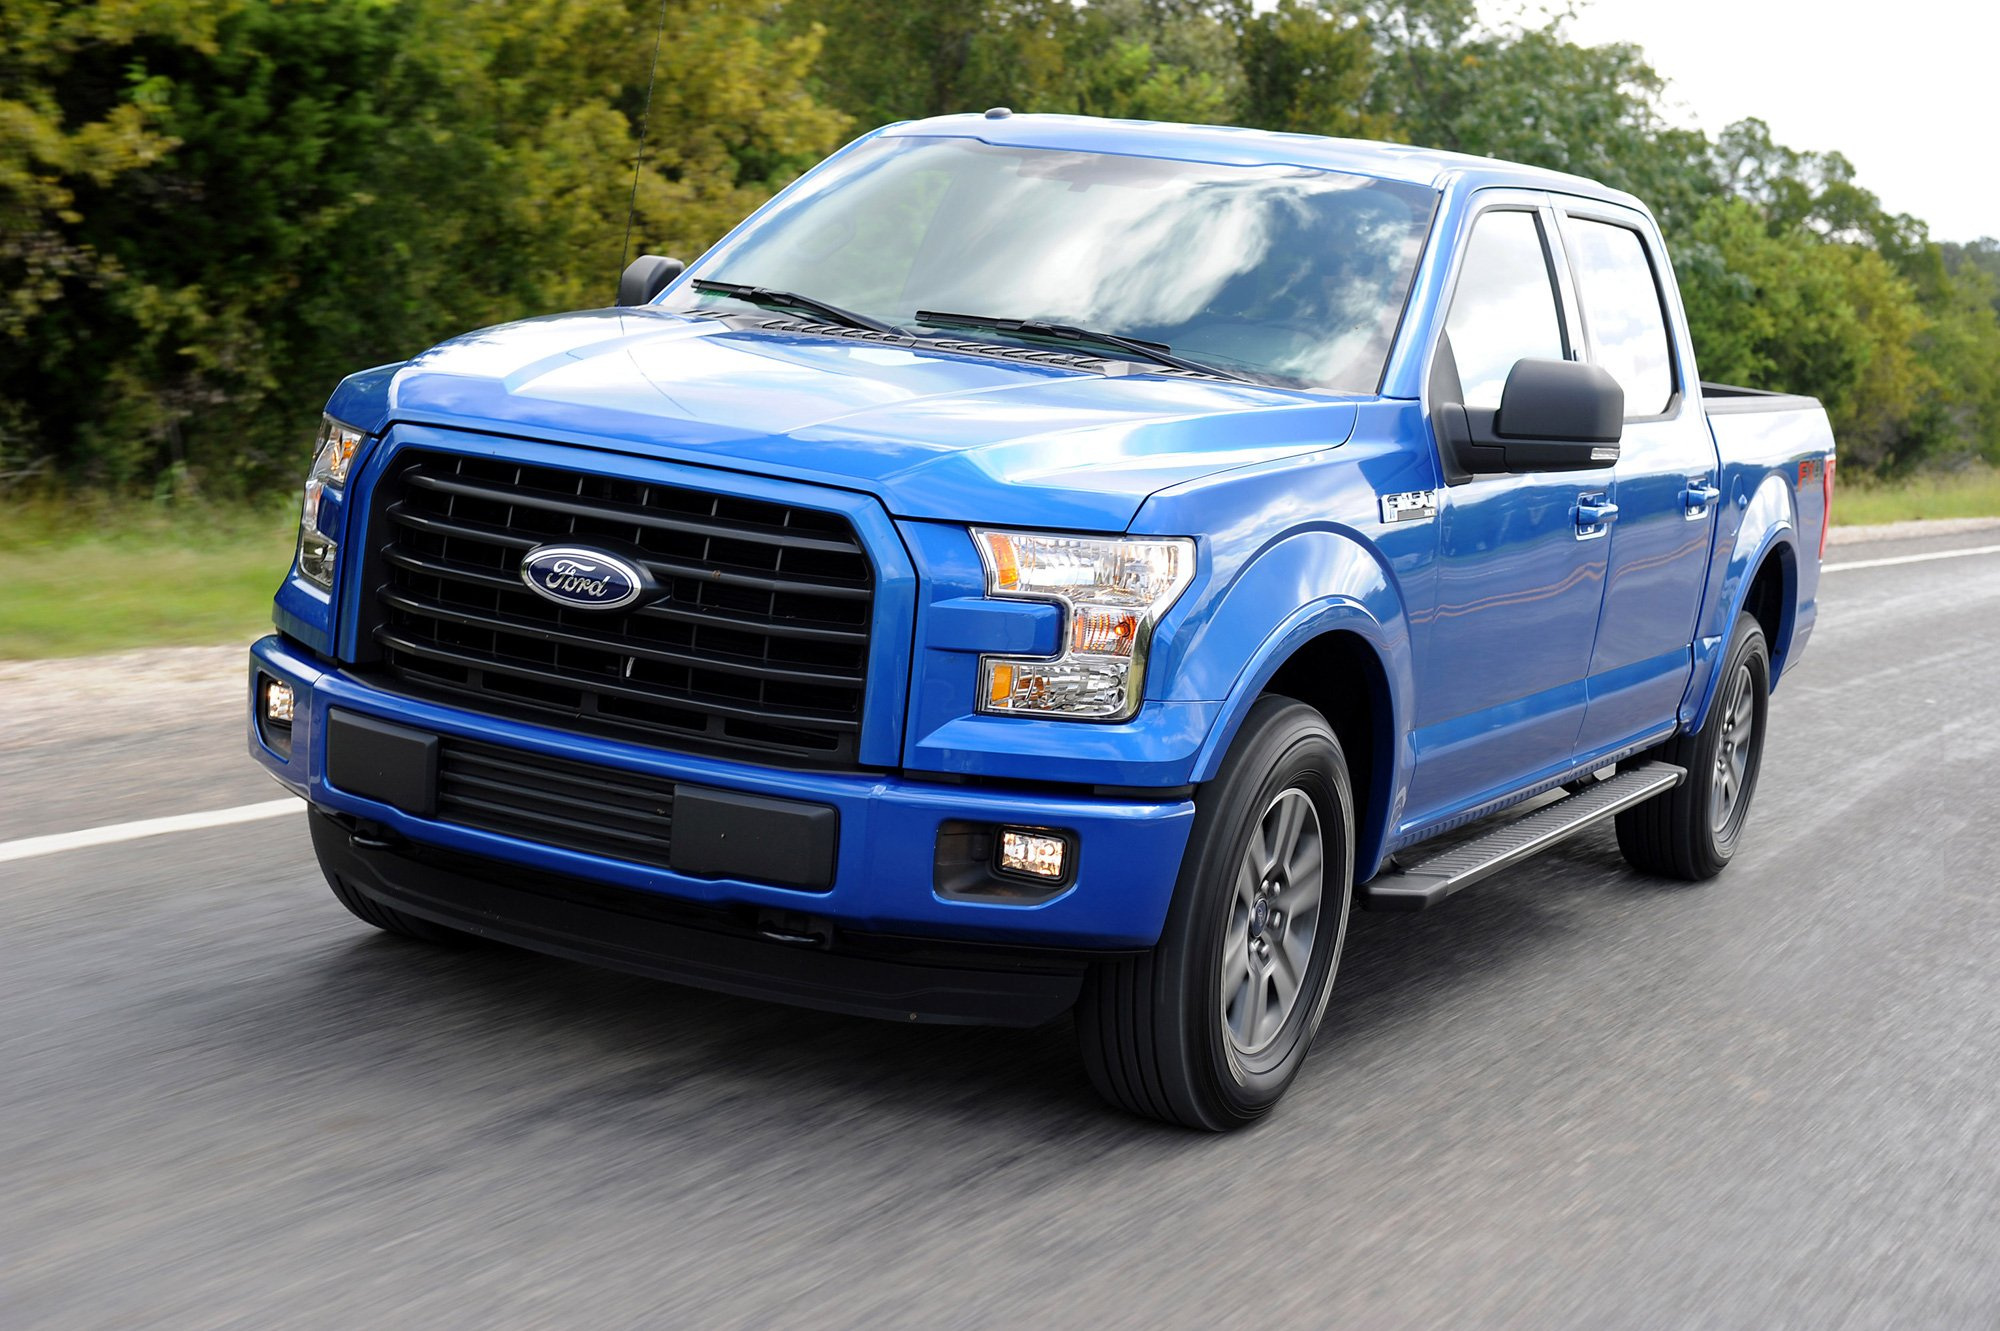 2015 ford f 150 supercrew earns five star nhtsa safety rating news. Black Bedroom Furniture Sets. Home Design Ideas